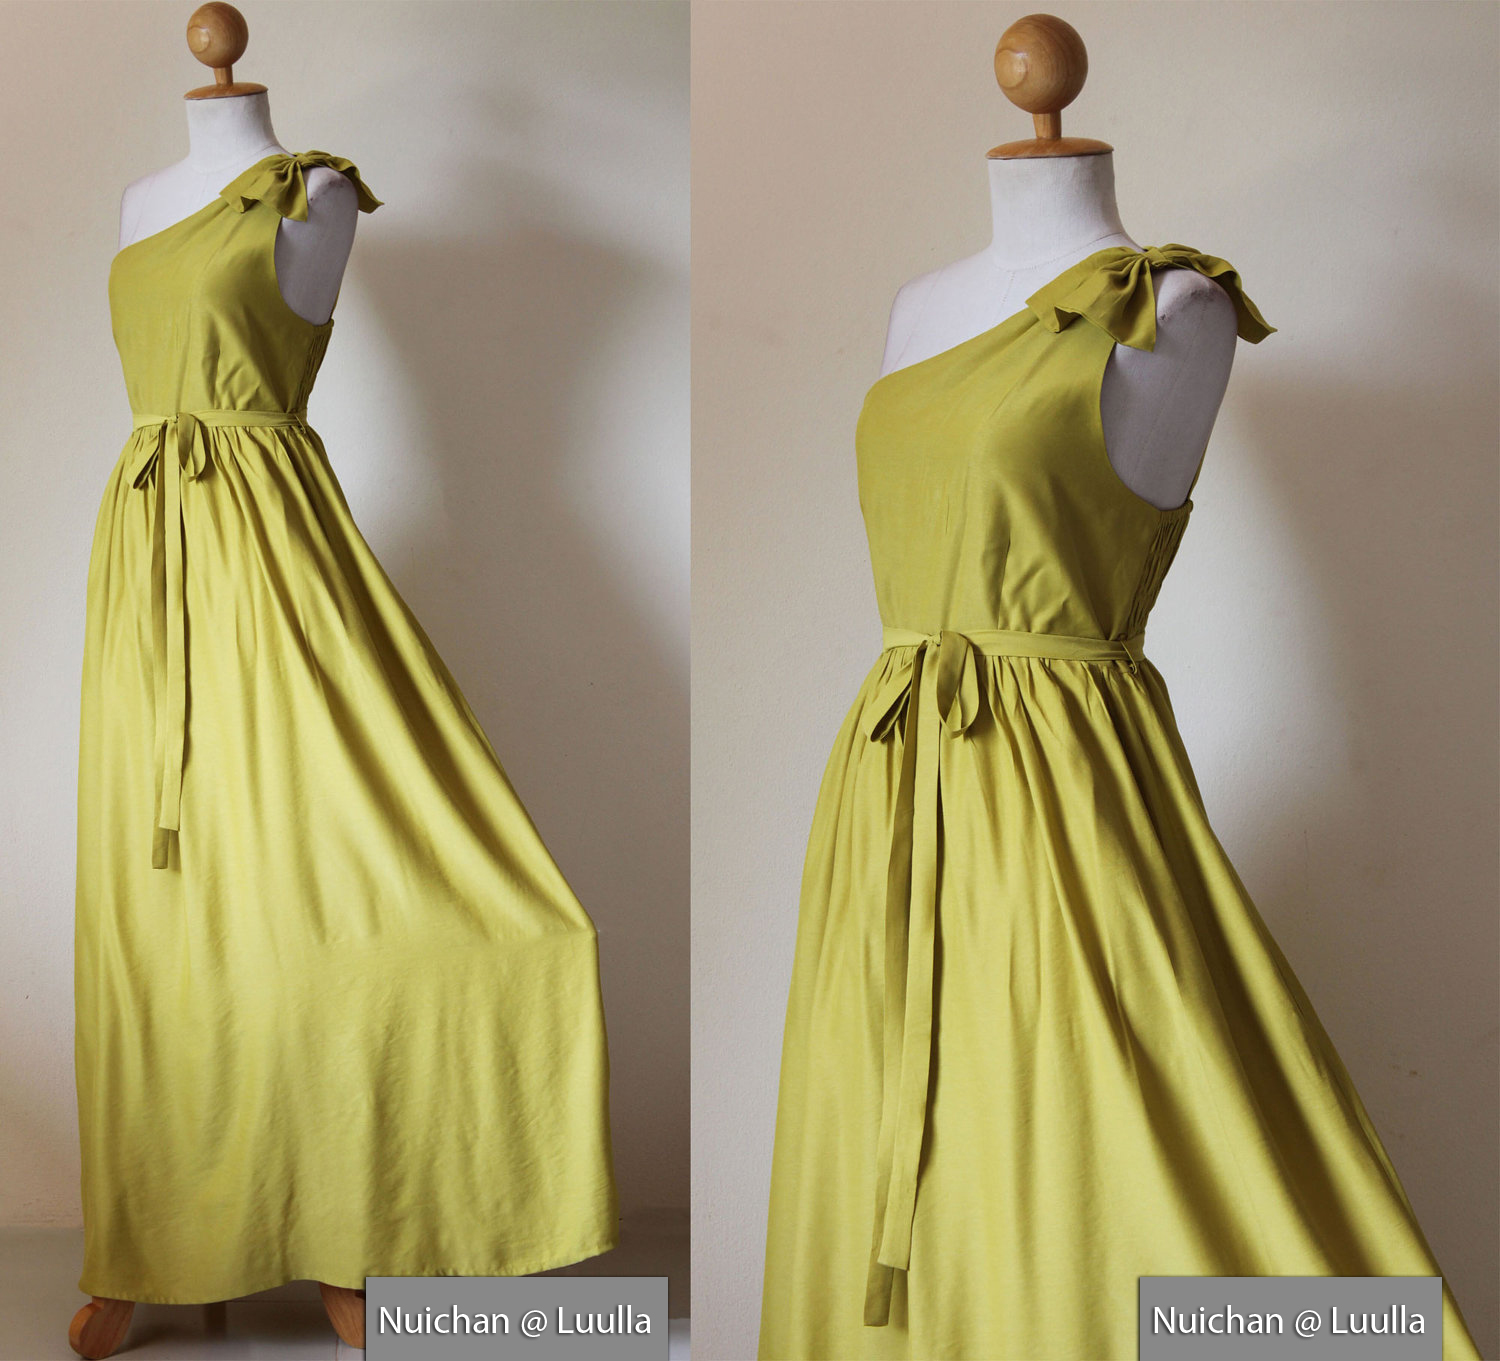 896a7b972e7 One Shoulder Dress - Bridesmaid Dress Long Evening Gown Green Yellow Maxi  Dress   Prom Queen Collect on Luulla